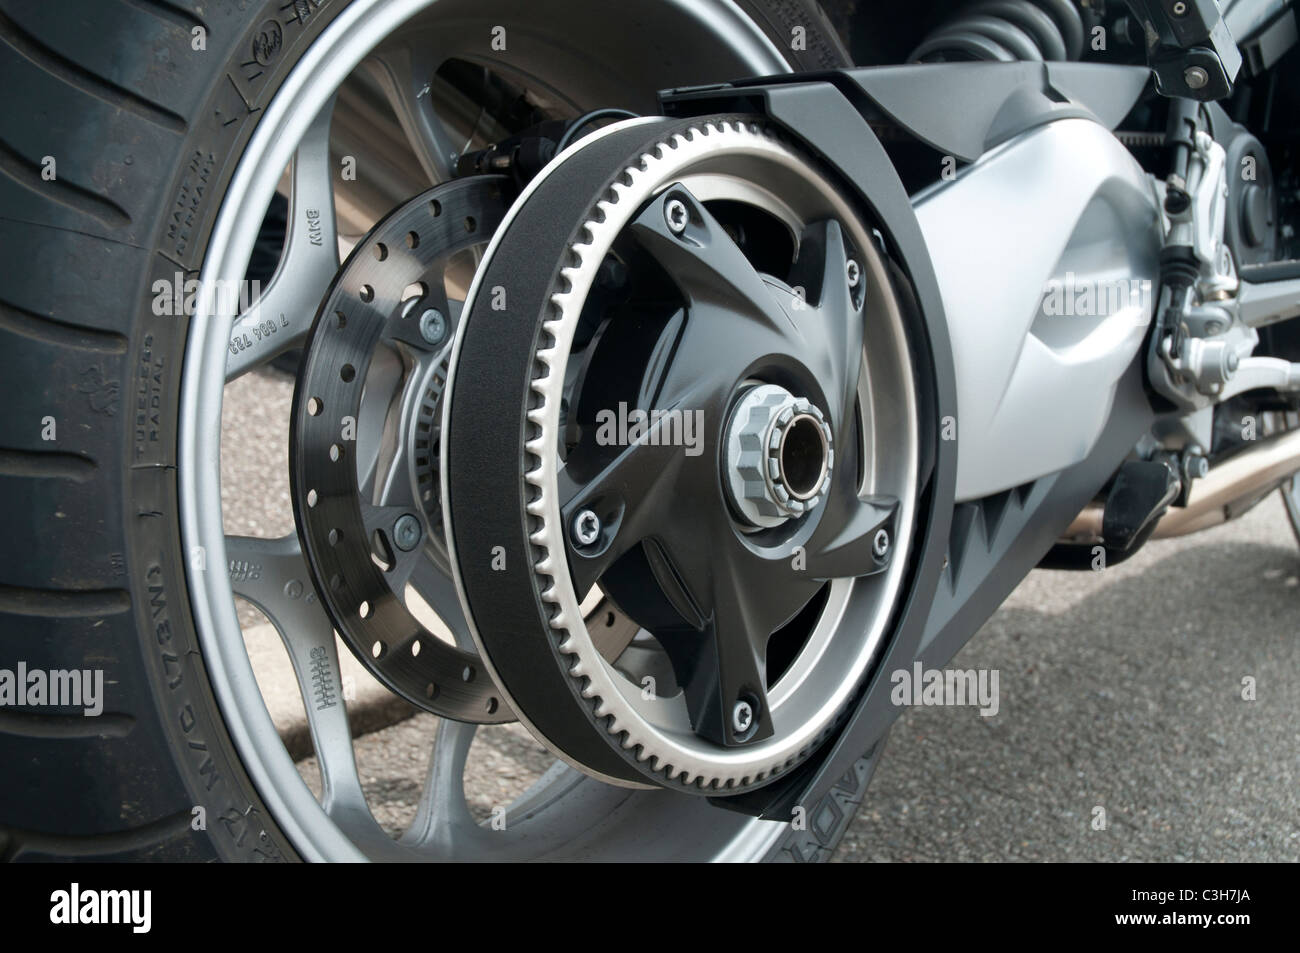 Motorcycle Belt Drive Stock Photo: 36643890 - Alamy